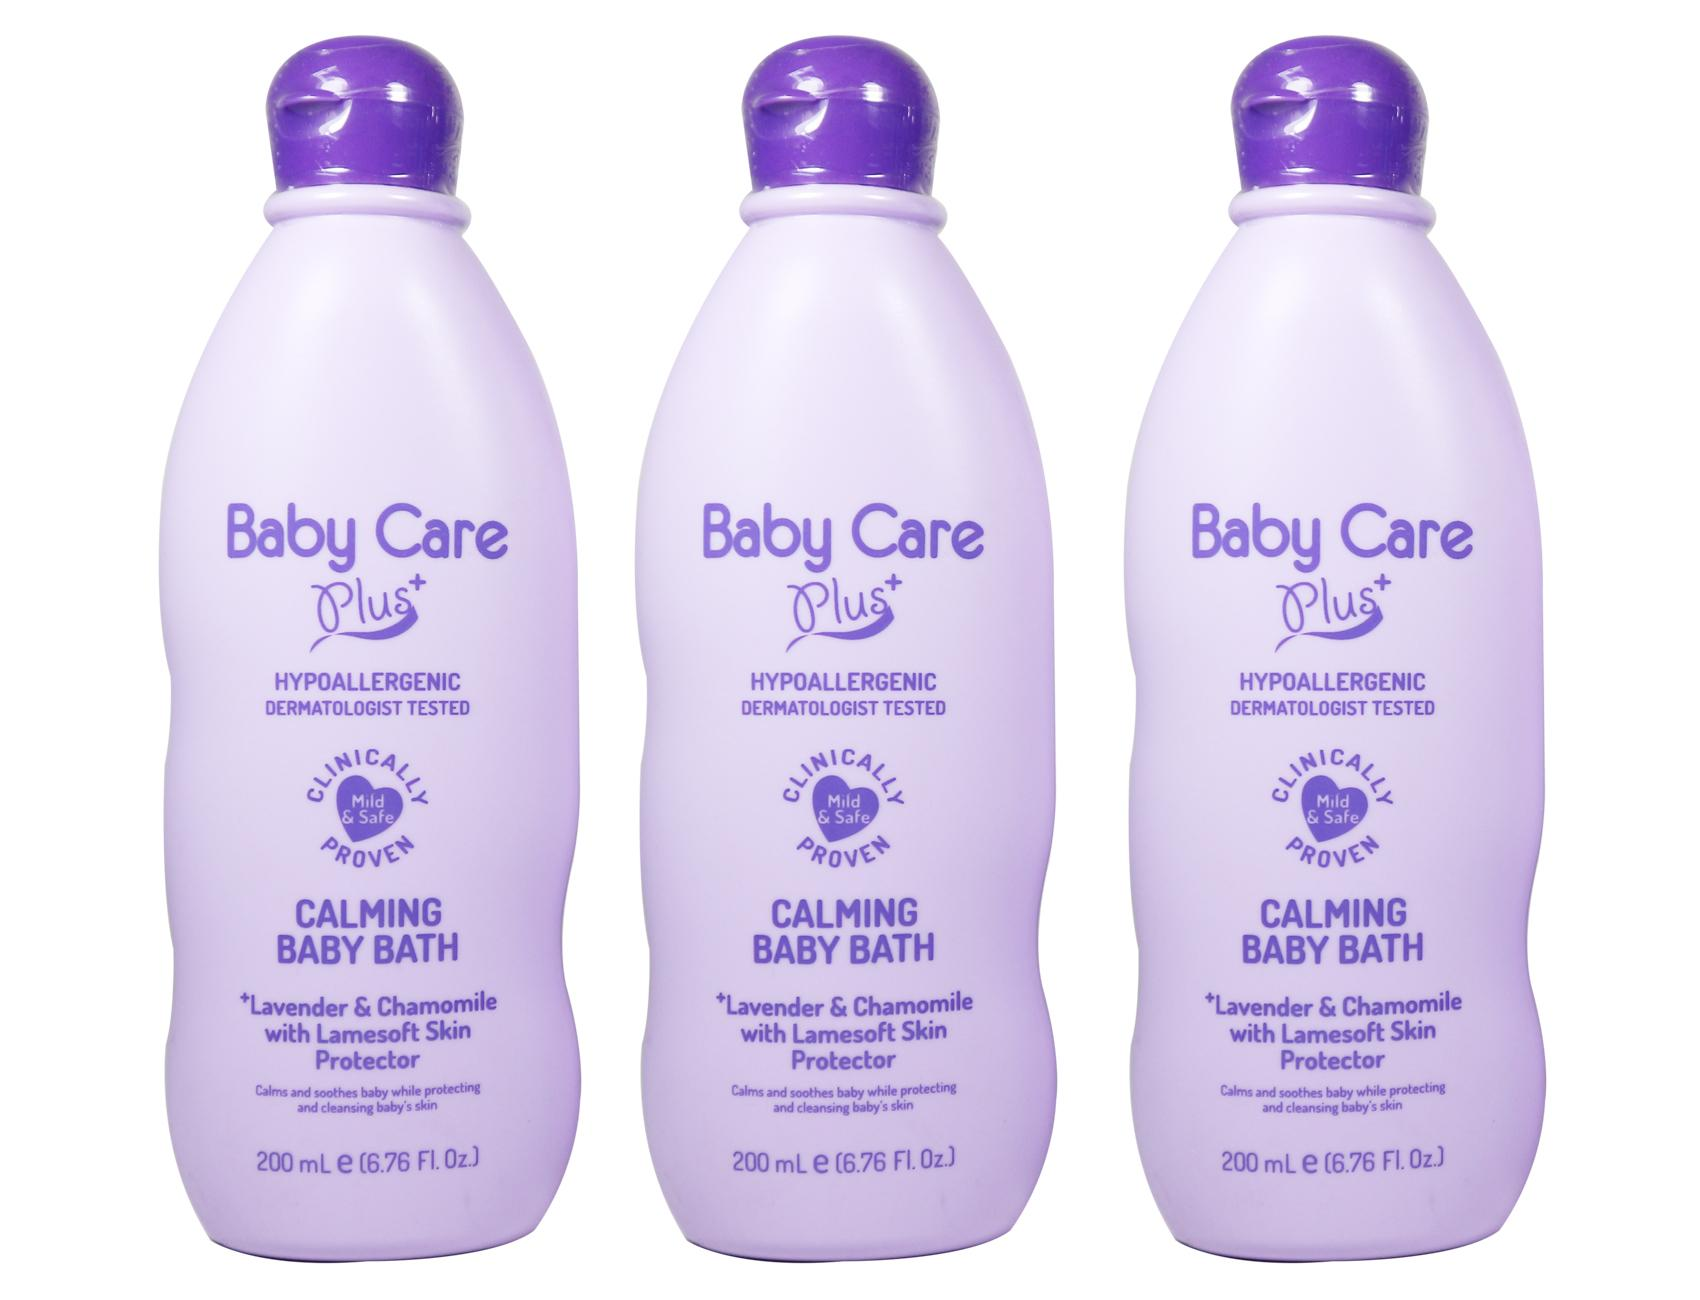 Baby Shampoos For Sale No Tears Shampoo Online Brands Prices Pigeon Wash Chamomile 200ml Paraben Free Care Plus Calming Bath Set Of 3